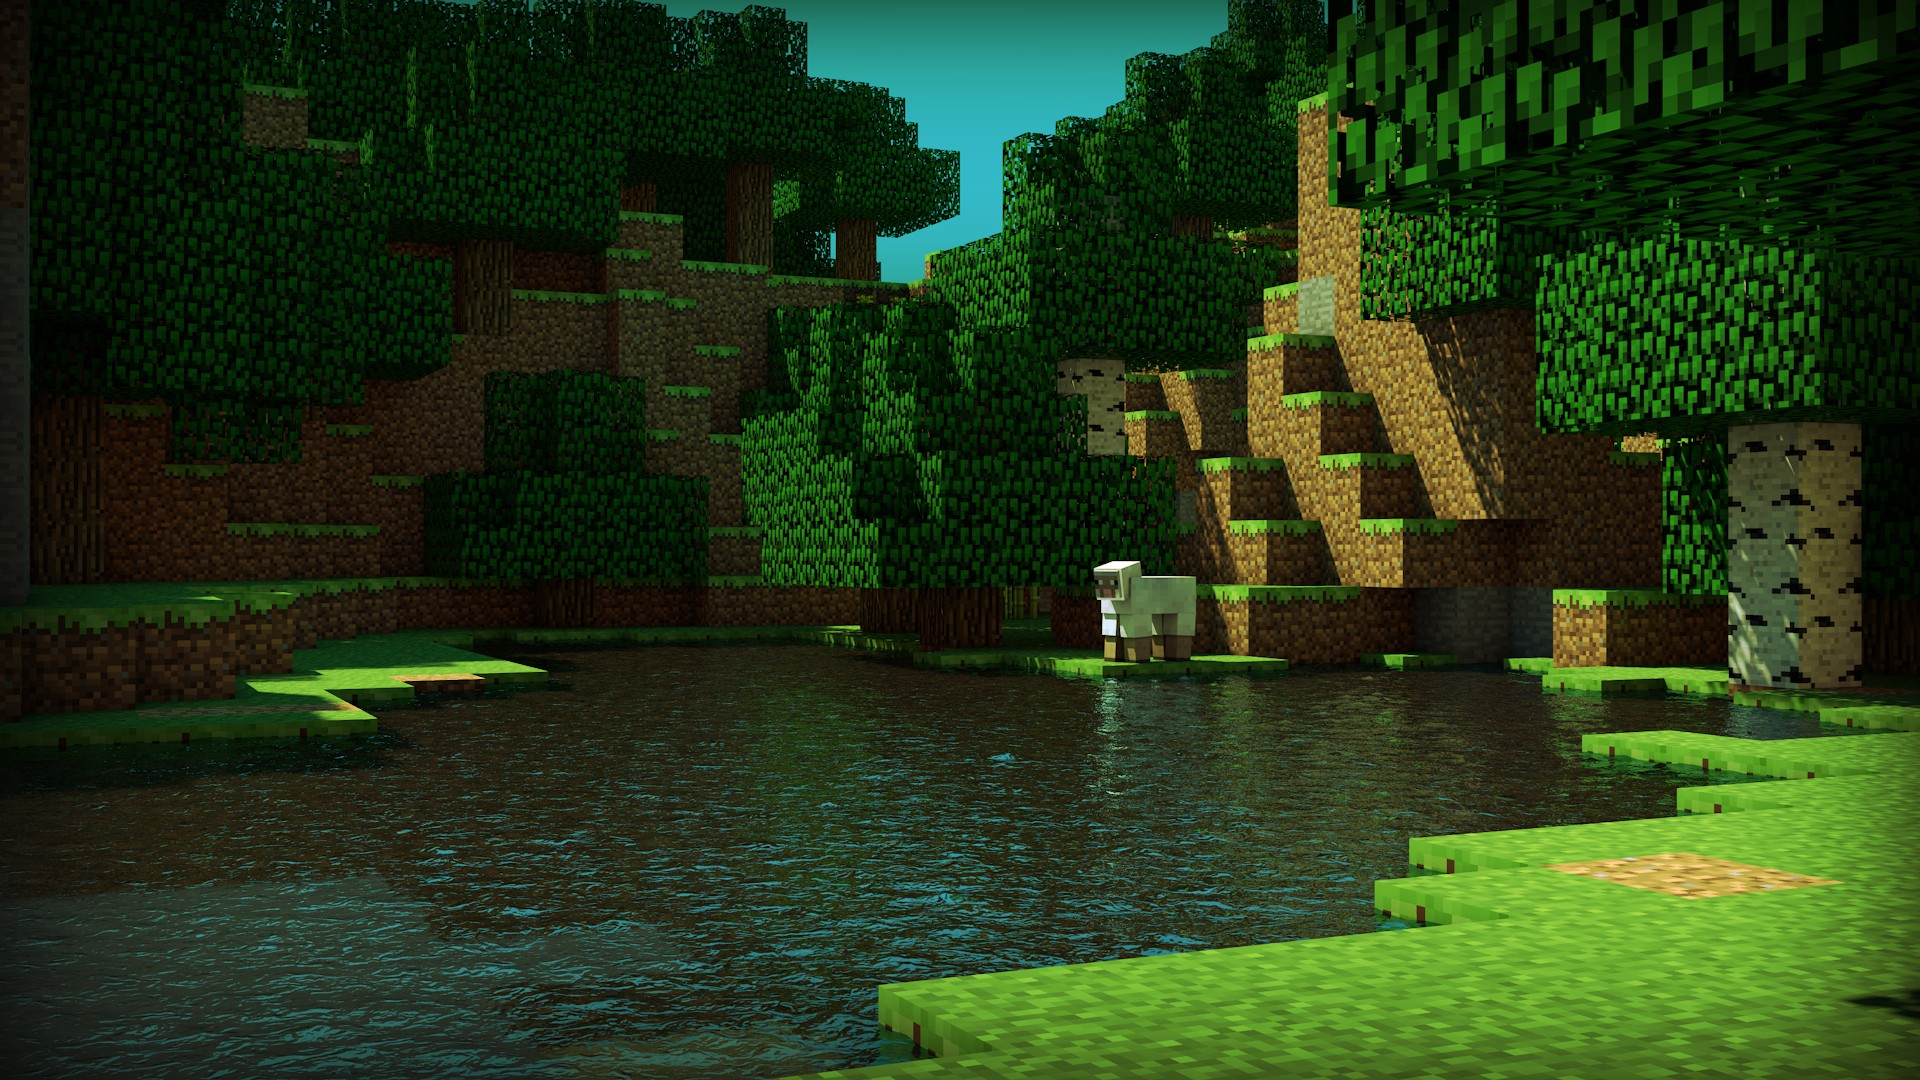 minecraft background | Minecraft Seeds For PC, Xbox, PE, Ps3, Ps4!